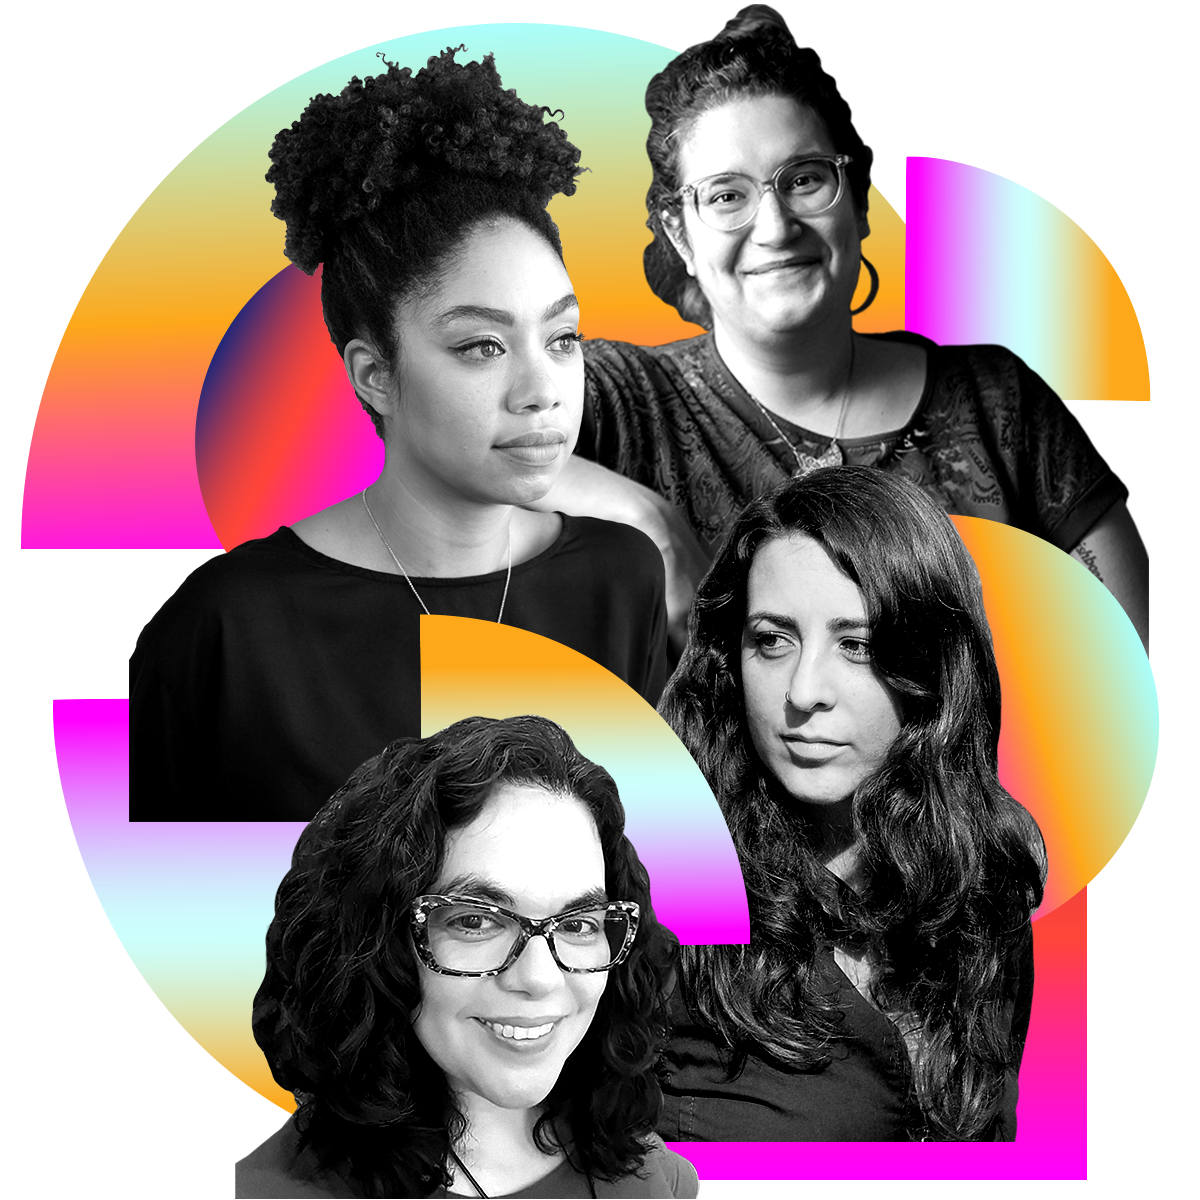 Photo illustration of Zinzi Clemmons, Carmen Maria Machado, Monica Byrne, and Alisa Rivera in black and white surrounded by colored gradients